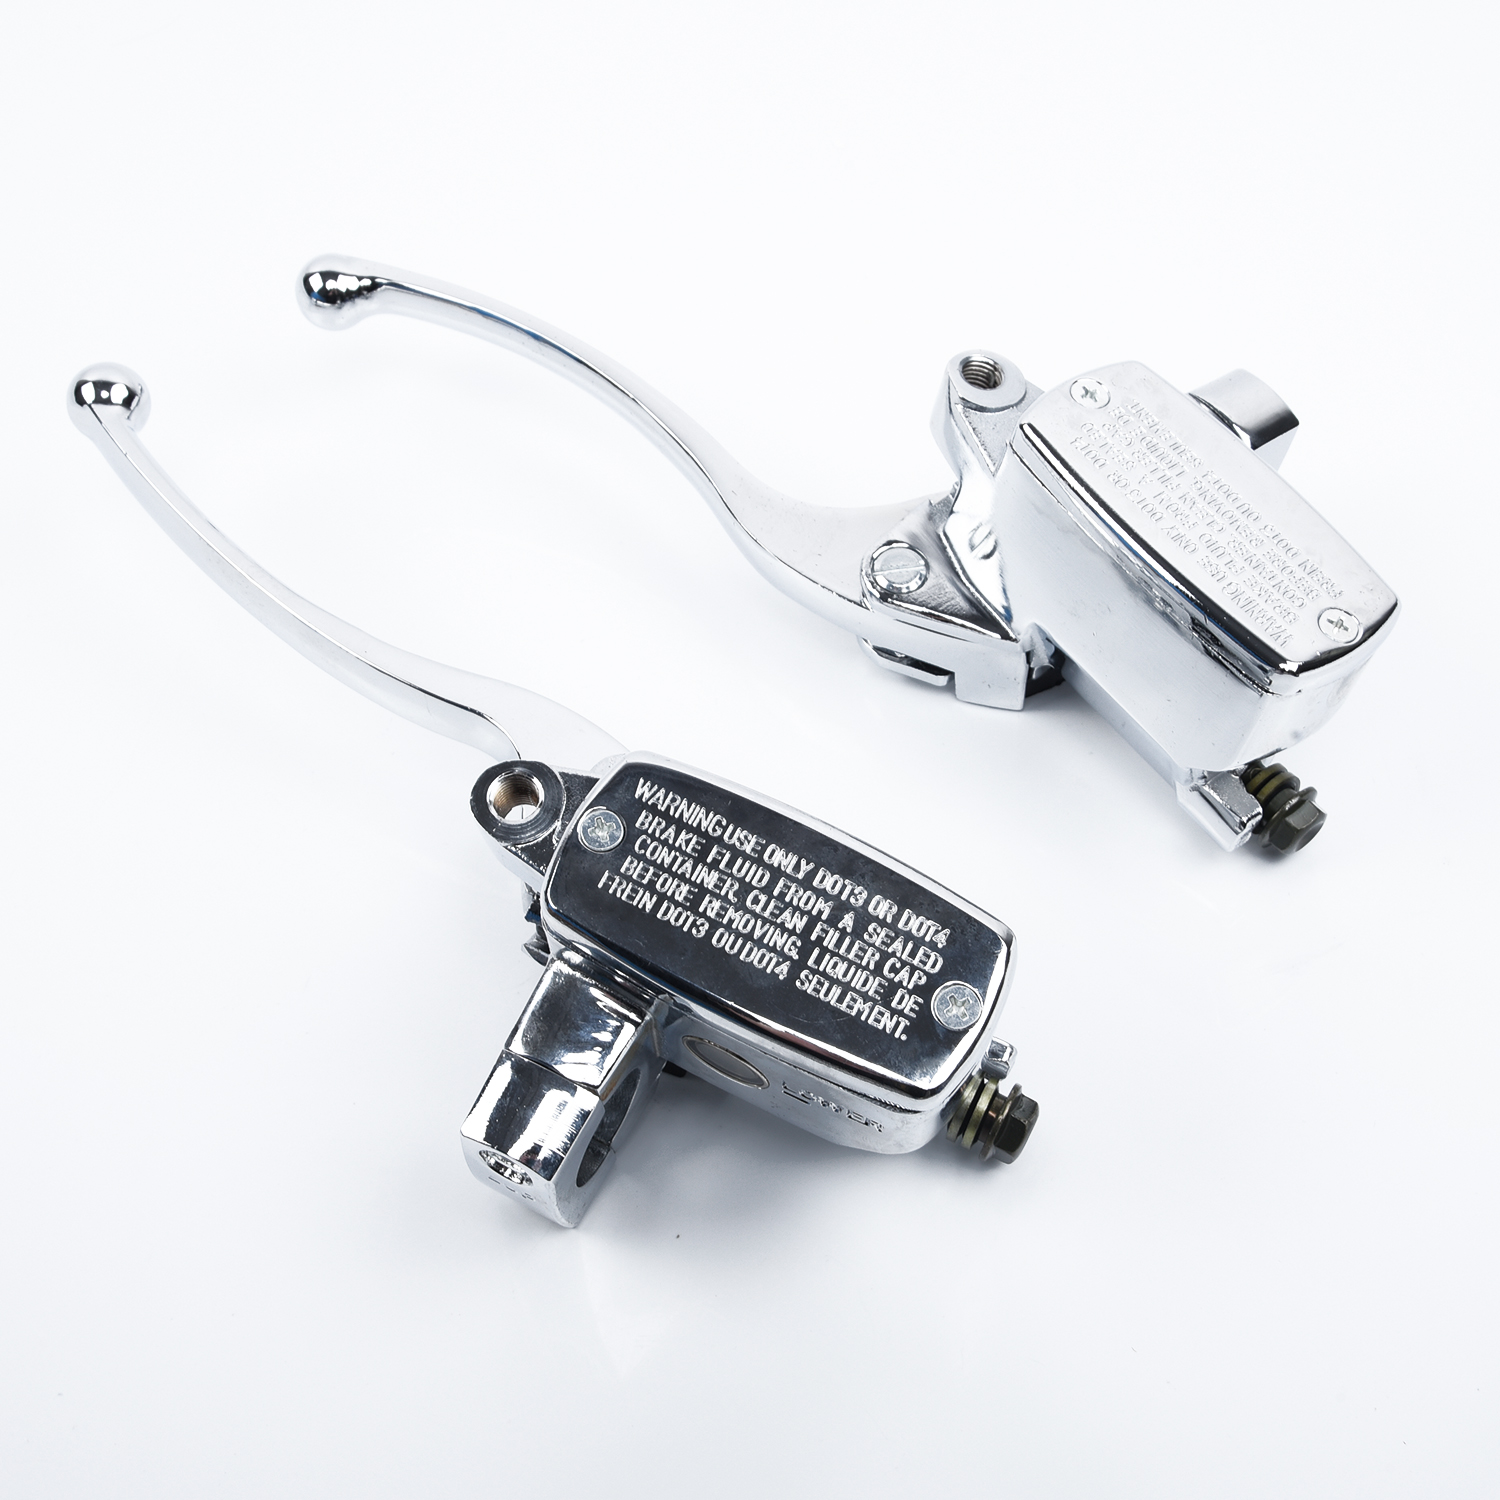 Motorcycle Chrome Brake Master Cylinder Clutch Lever Motorcycle Accessories Fit For Suzuki Intruder 800/1400/1500